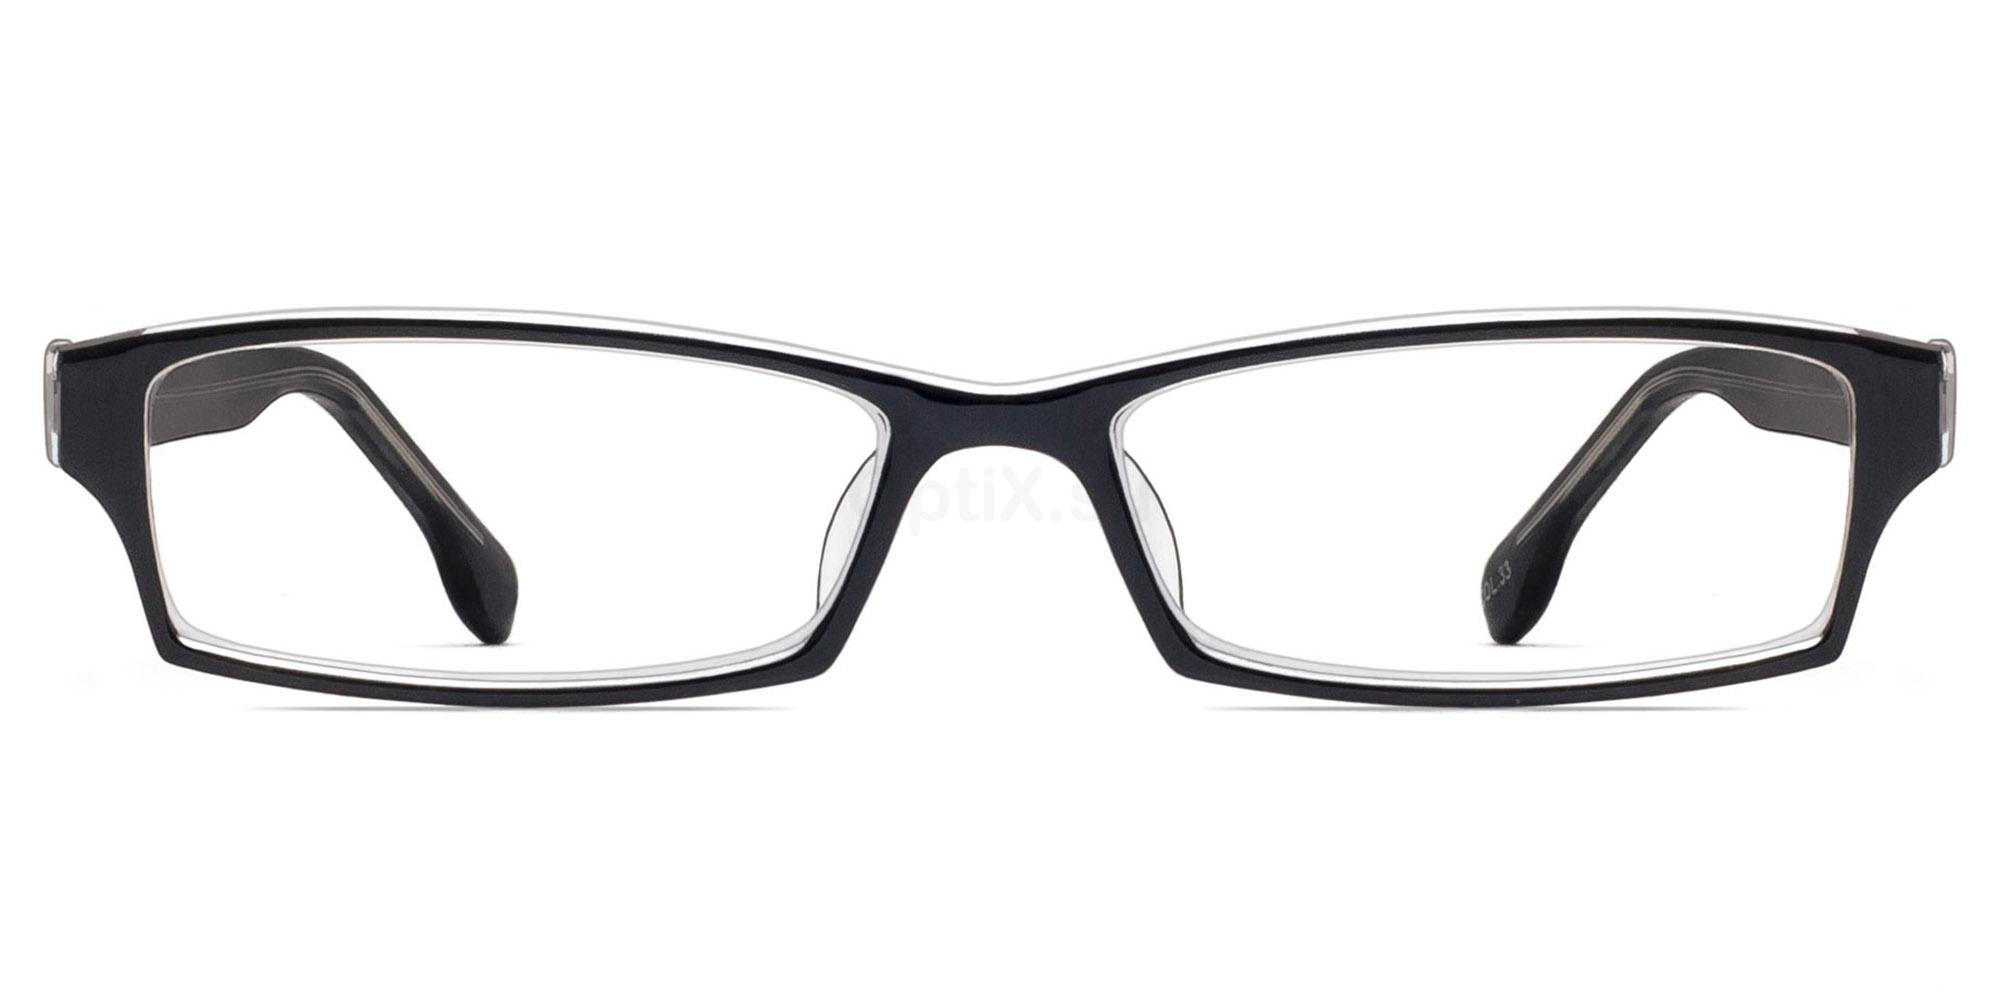 Col. 33 2381 - Black and Clear Glasses, Savannah